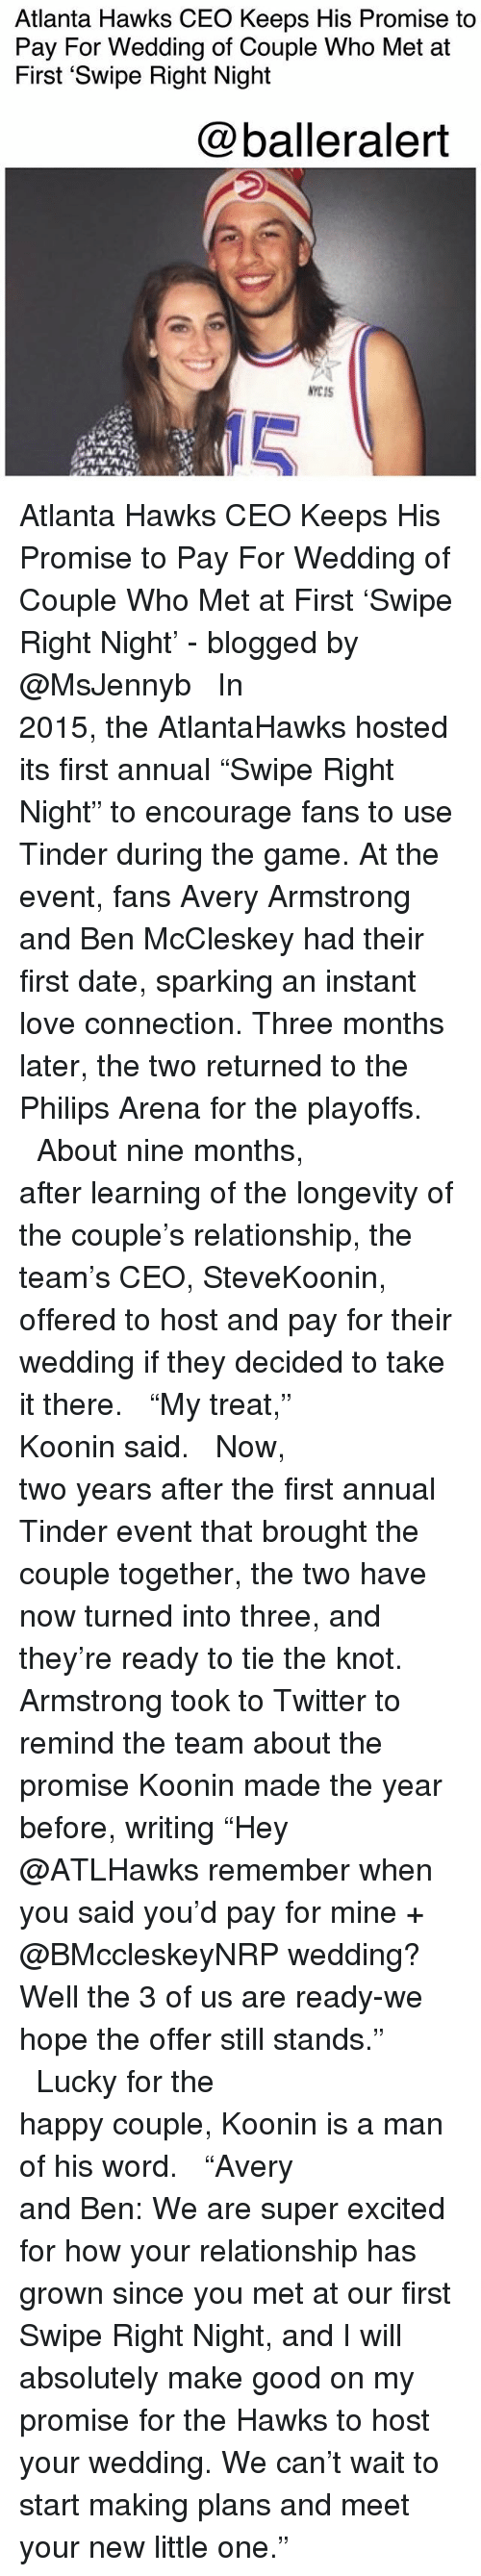 "the knot: Atlanta Hawks CEO Keeps His Promise to  Pay For Wedding of Couple Who Met at  First 'Swipe Right Night  @balleralert  NYCIS  10 Atlanta Hawks CEO Keeps His Promise to Pay For Wedding of Couple Who Met at First 'Swipe Right Night' - blogged by @MsJennyb ⠀⠀⠀⠀⠀⠀⠀⠀⠀ ⠀⠀⠀⠀⠀⠀⠀⠀⠀ In 2015, the AtlantaHawks hosted its first annual ""Swipe Right Night"" to encourage fans to use Tinder during the game. At the event, fans Avery Armstrong and Ben McCleskey had their first date, sparking an instant love connection. Three months later, the two returned to the Philips Arena for the playoffs. ⠀⠀⠀⠀⠀⠀⠀⠀⠀ ⠀⠀⠀⠀⠀⠀⠀⠀⠀ About nine months, after learning of the longevity of the couple's relationship, the team's CEO, SteveKoonin, offered to host and pay for their wedding if they decided to take it there. ⠀⠀⠀⠀⠀⠀⠀⠀⠀ ⠀⠀⠀⠀⠀⠀⠀⠀⠀ ""My treat,"" Koonin said. ⠀⠀⠀⠀⠀⠀⠀⠀⠀ ⠀⠀⠀⠀⠀⠀⠀⠀⠀ Now, two years after the first annual Tinder event that brought the couple together, the two have now turned into three, and they're ready to tie the knot. Armstrong took to Twitter to remind the team about the promise Koonin made the year before, writing ""Hey @ATLHawks remember when you said you'd pay for mine + @BMccleskeyNRP wedding? Well the 3 of us are ready-we hope the offer still stands."" ⠀⠀⠀⠀⠀⠀⠀⠀⠀ ⠀⠀⠀⠀⠀⠀⠀⠀⠀ Lucky for the happy couple, Koonin is a man of his word. ⠀⠀⠀⠀⠀⠀⠀⠀⠀ ⠀⠀⠀⠀⠀⠀⠀⠀⠀ ""Avery and Ben: We are super excited for how your relationship has grown since you met at our first Swipe Right Night, and I will absolutely make good on my promise for the Hawks to host your wedding. We can't wait to start making plans and meet your new little one."""